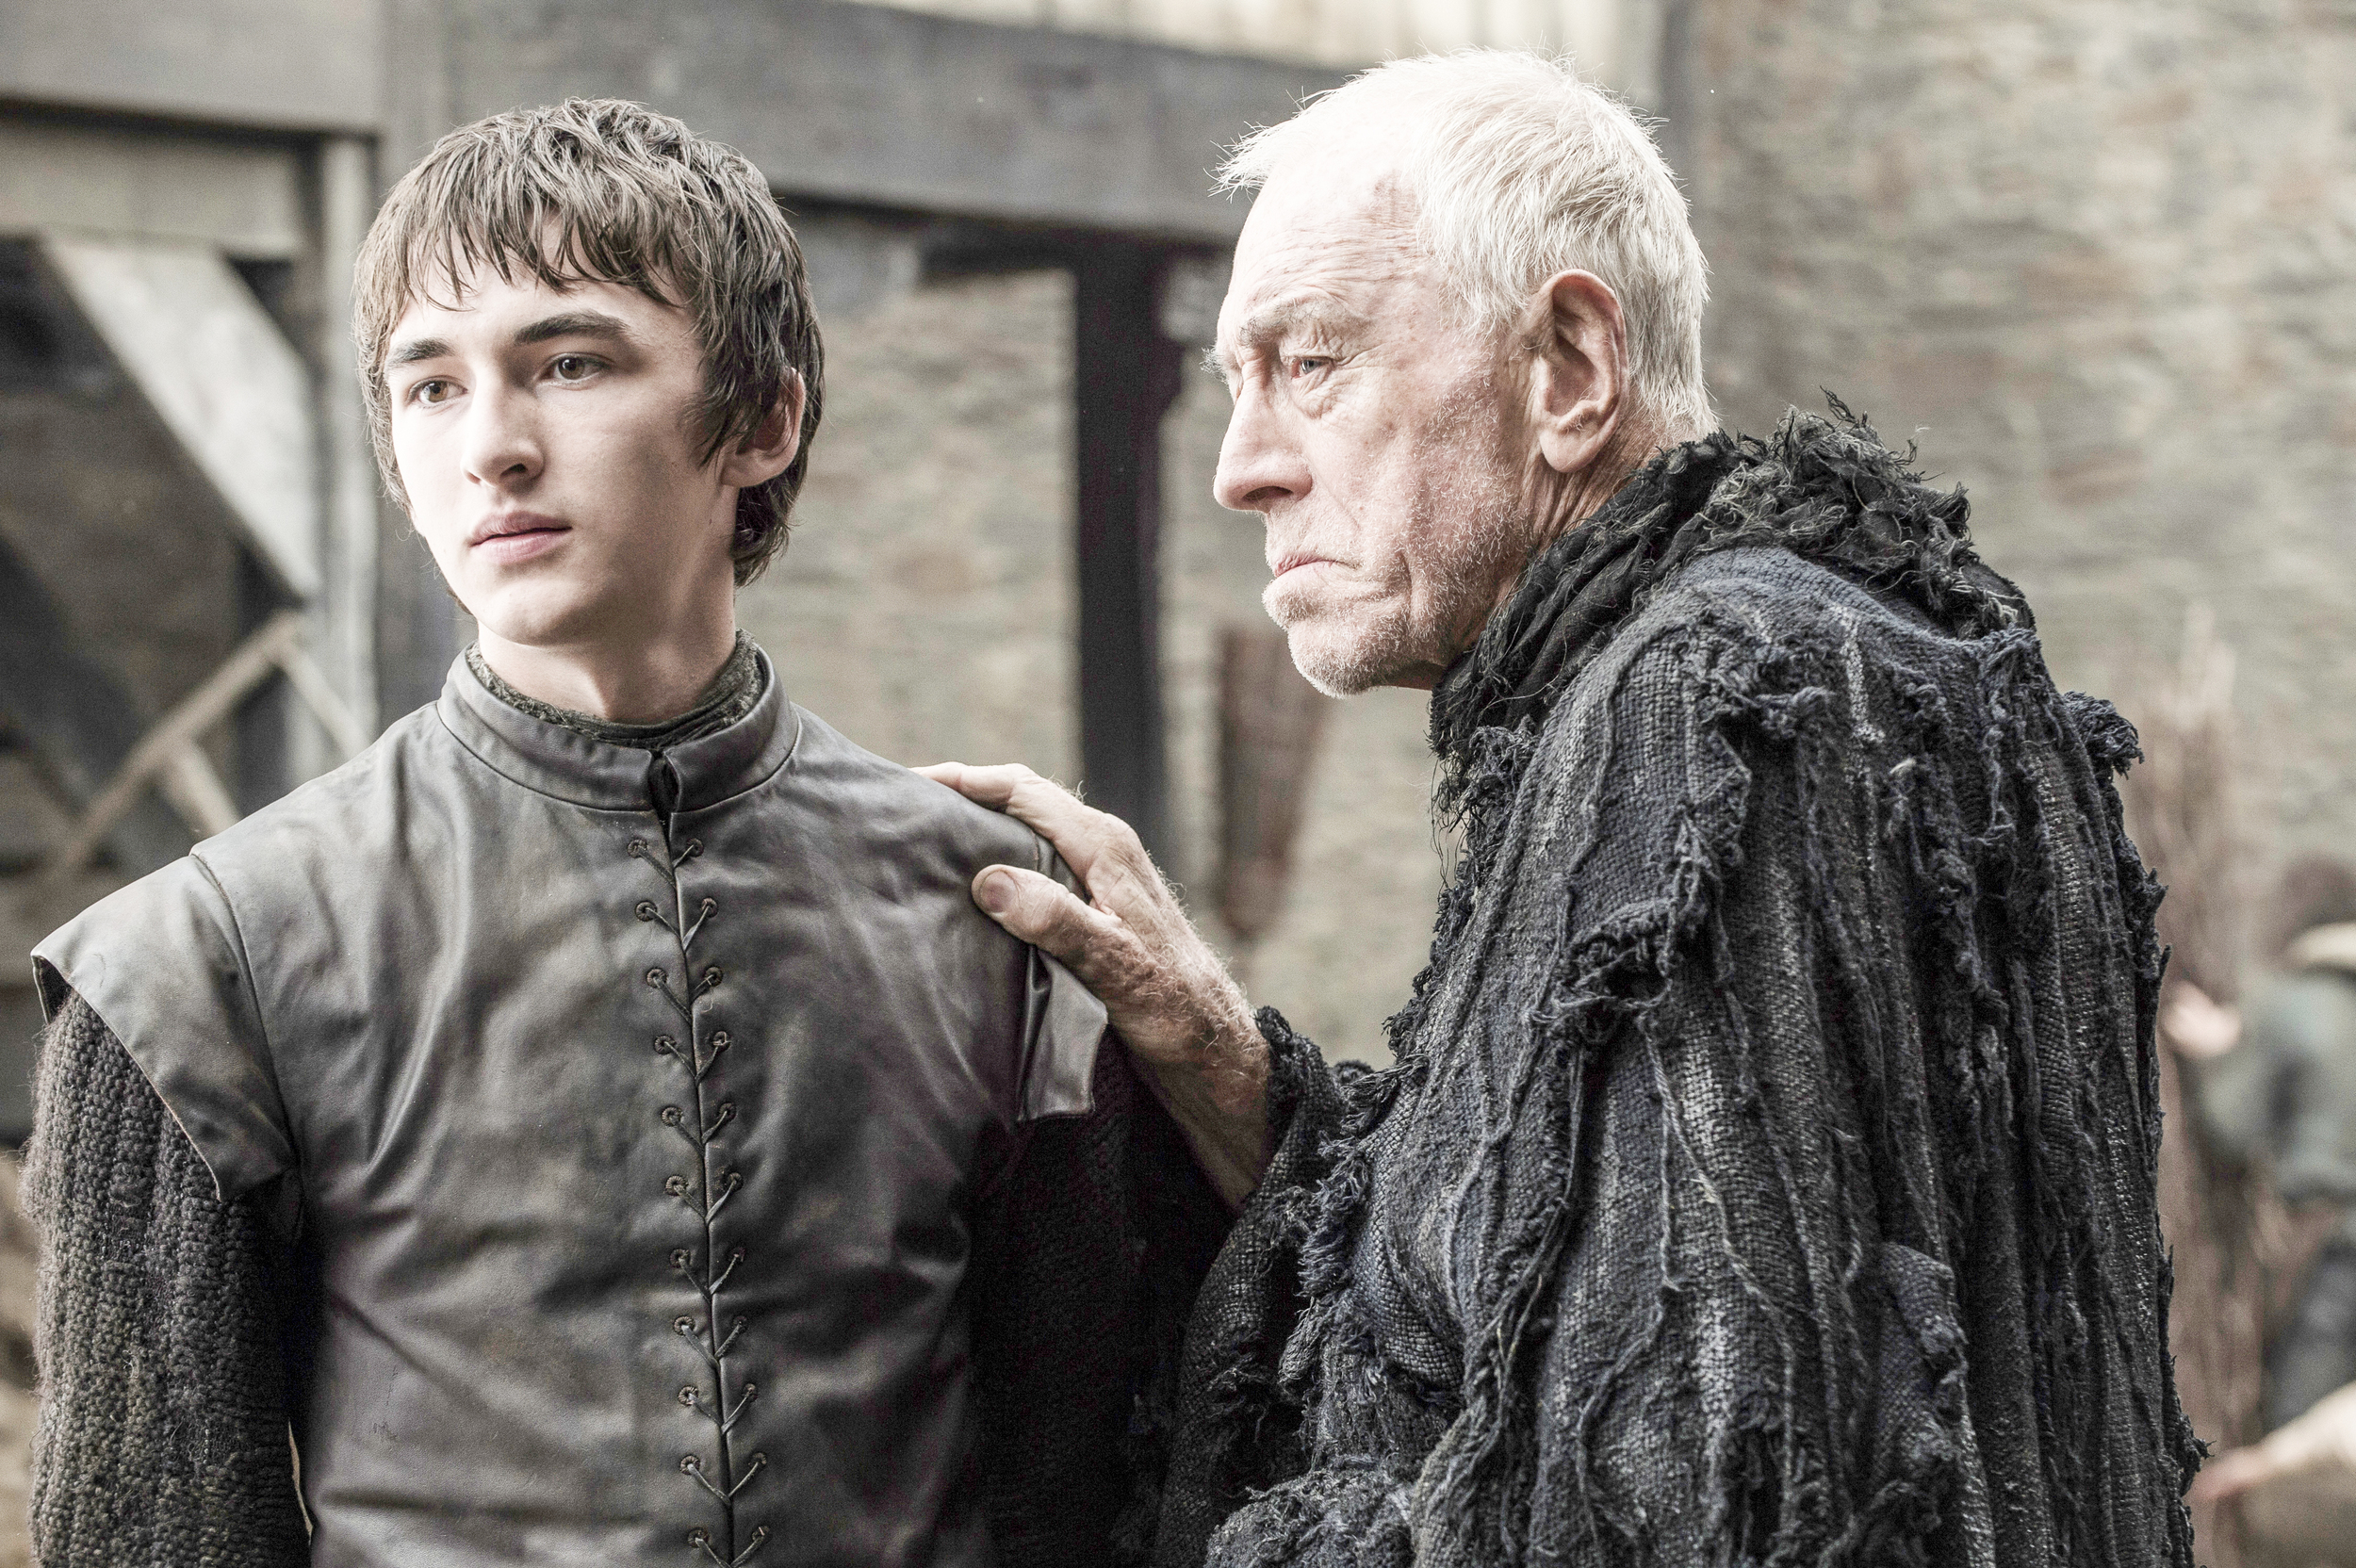 game of thrones season 6 photos, bran stark, max von sydow, three eyed raven